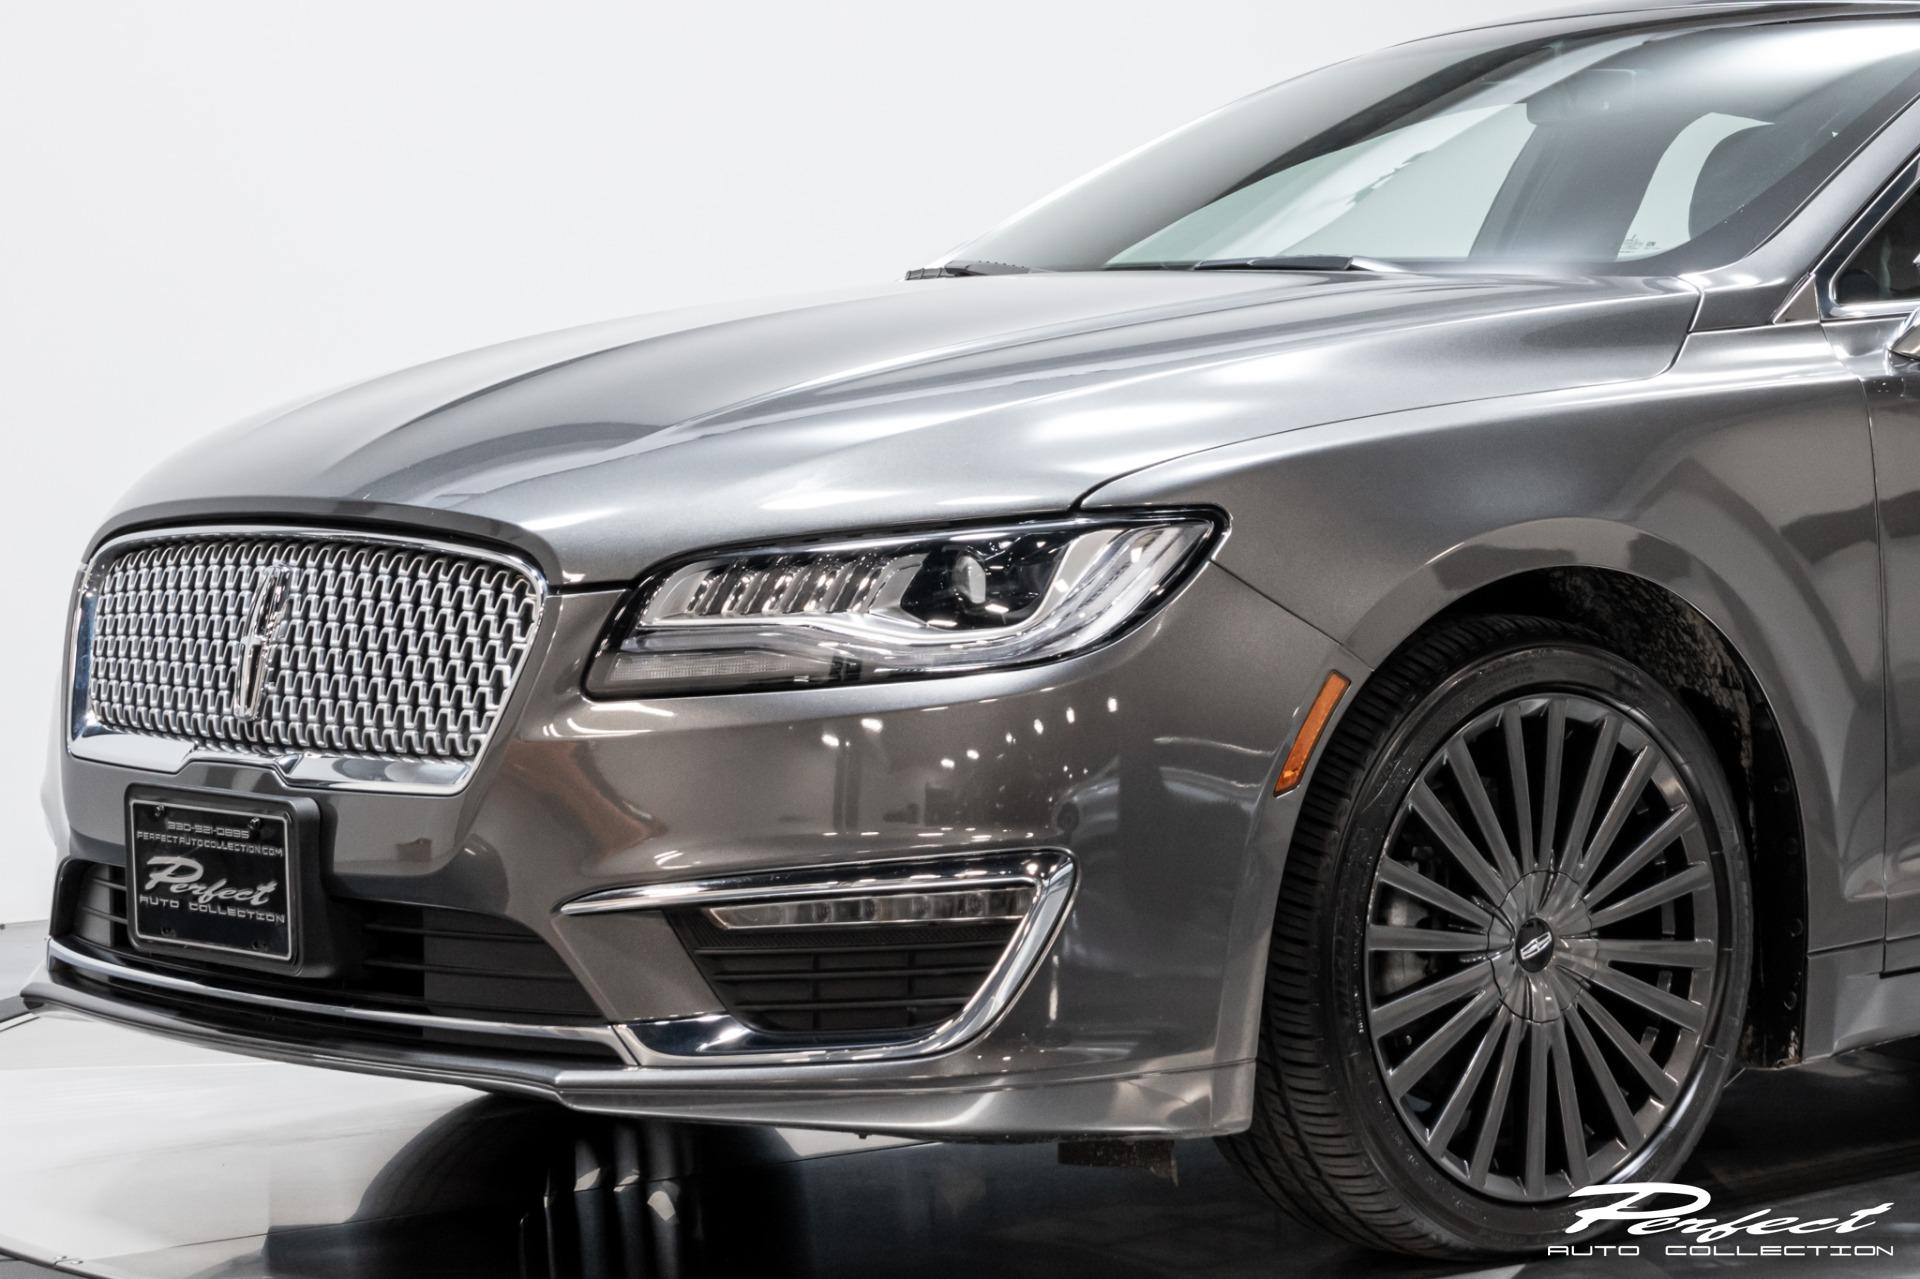 Used 2018 Lincoln MKZ Hybrid Reserve for sale Sold at Perfect Auto Collection in Akron OH 44310 2